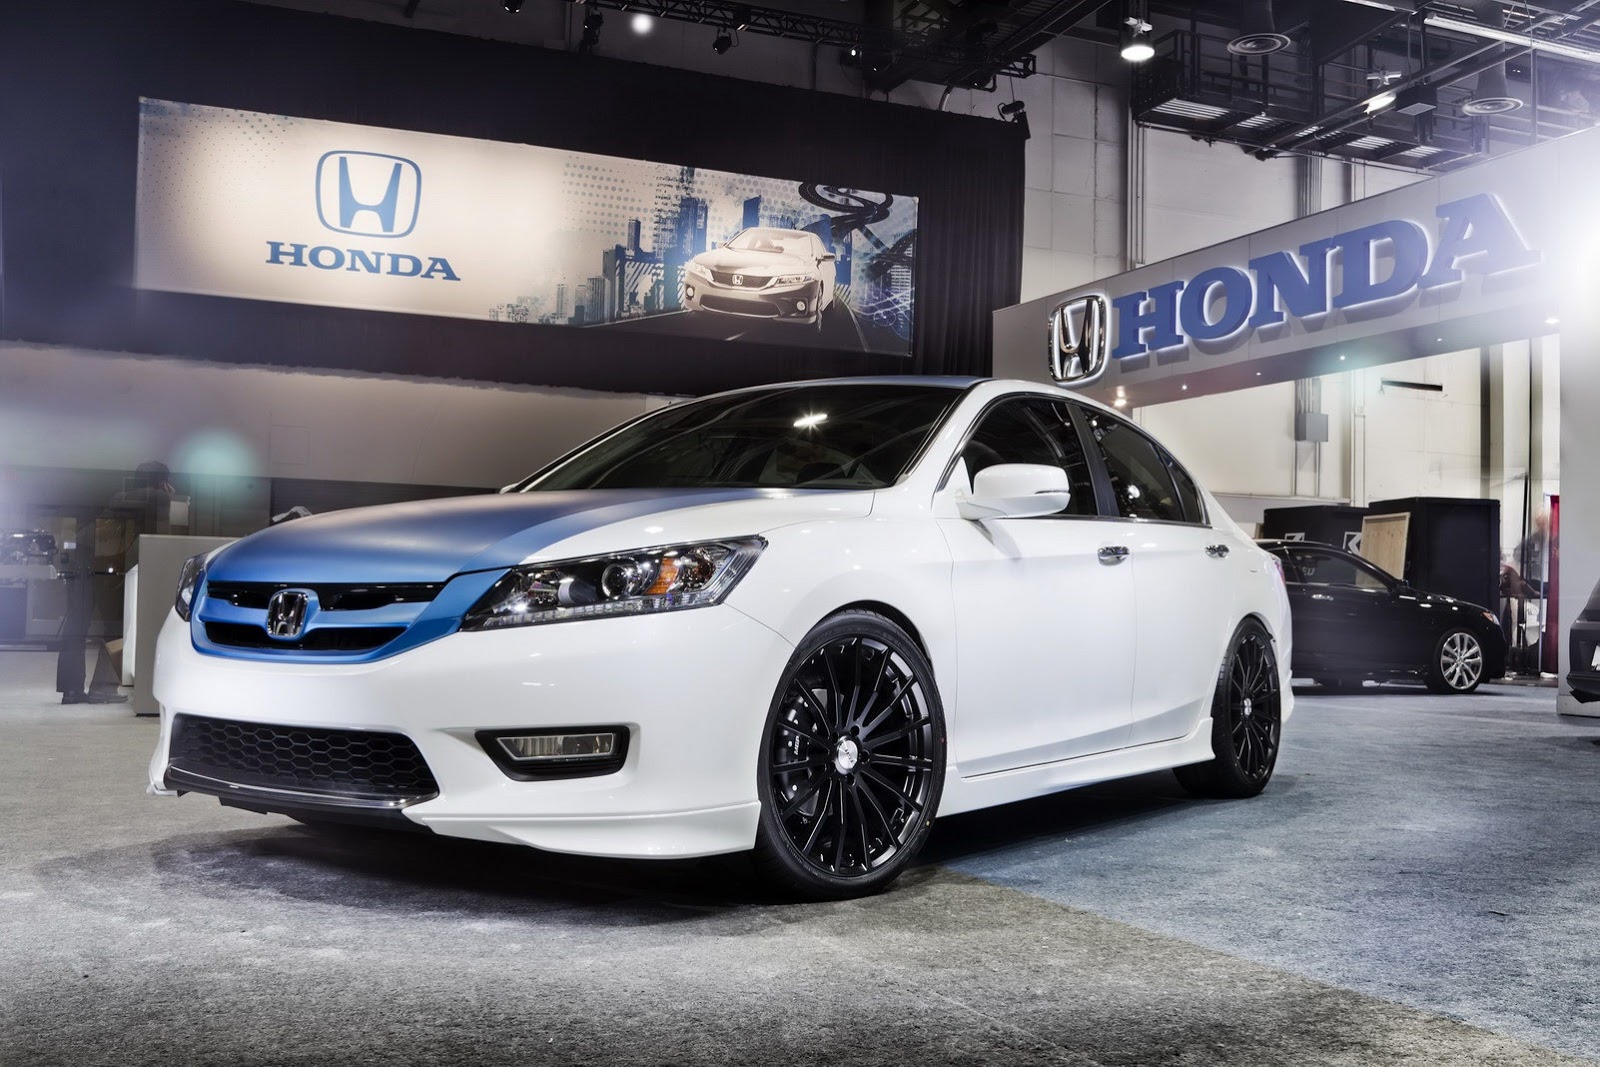 2013 honda accord by dso eyewear at 2012 sema autoevolution for Honda accord used 2013